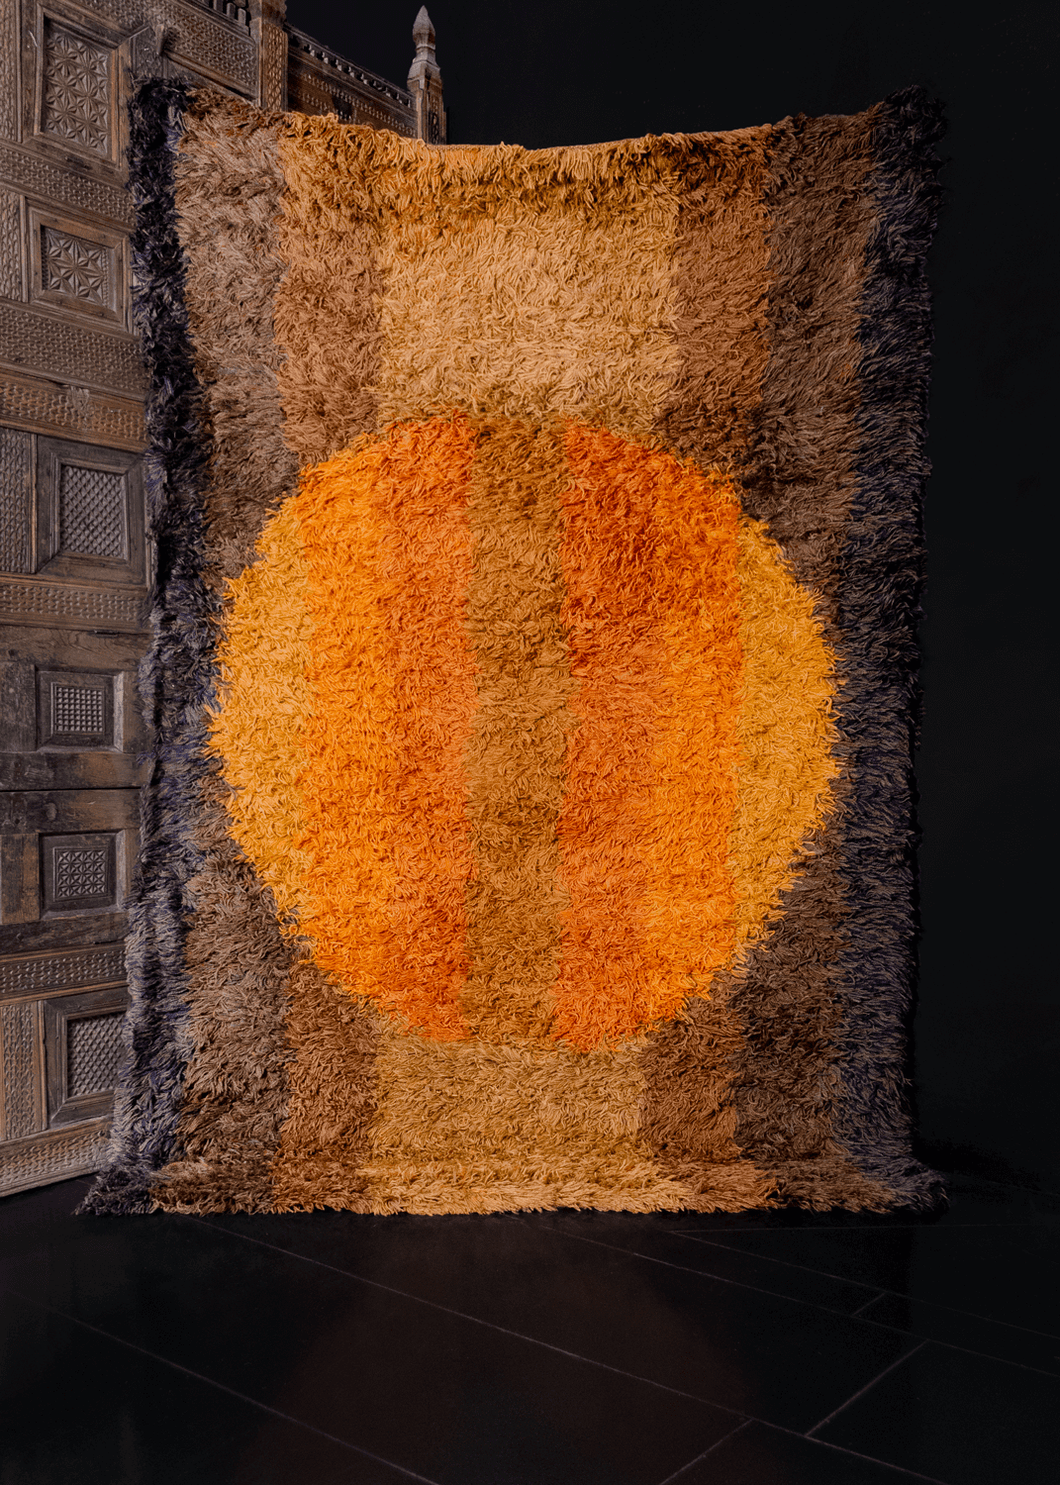 Vintage Rya rug handwoven in Sweden during third quarter of 20th century. Minimalist circle design in earth tones of gold, burnt orange and brown.